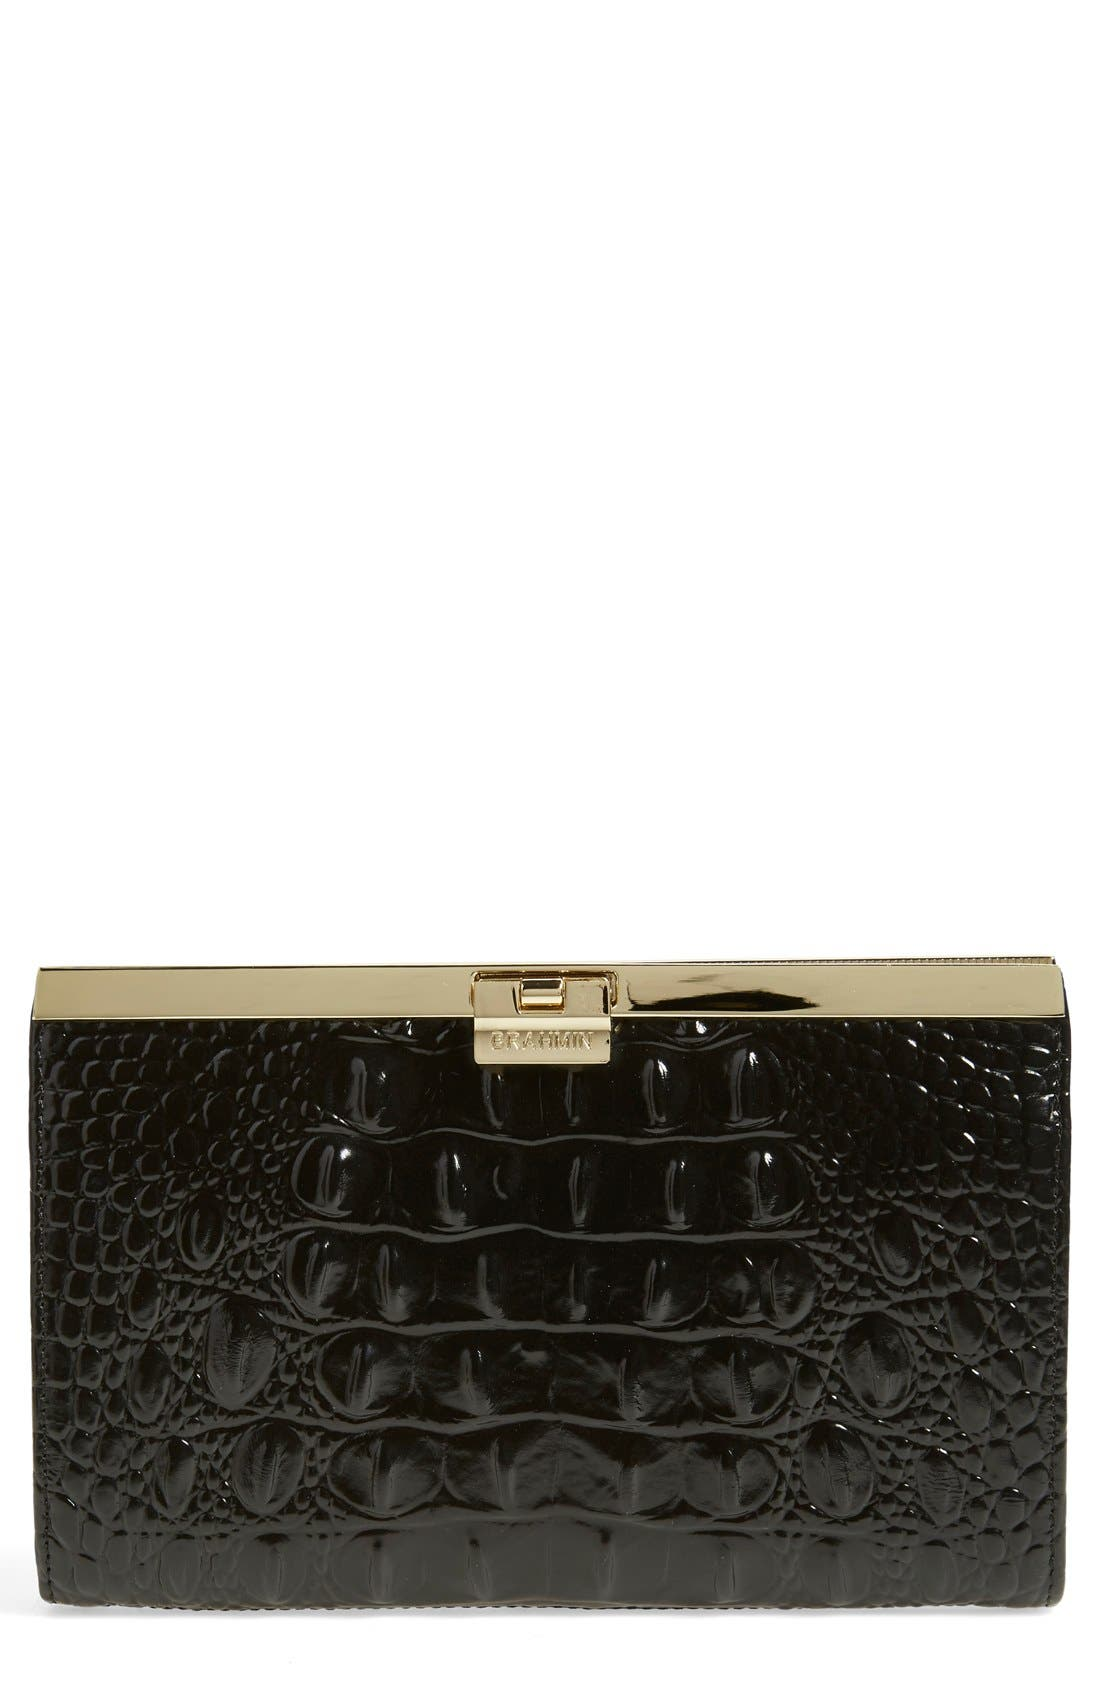 Alternate Image 1 Selected - Brahmin 'Tillie' Croc Embossed Leather Clutch (Nordstrom Exclusive)